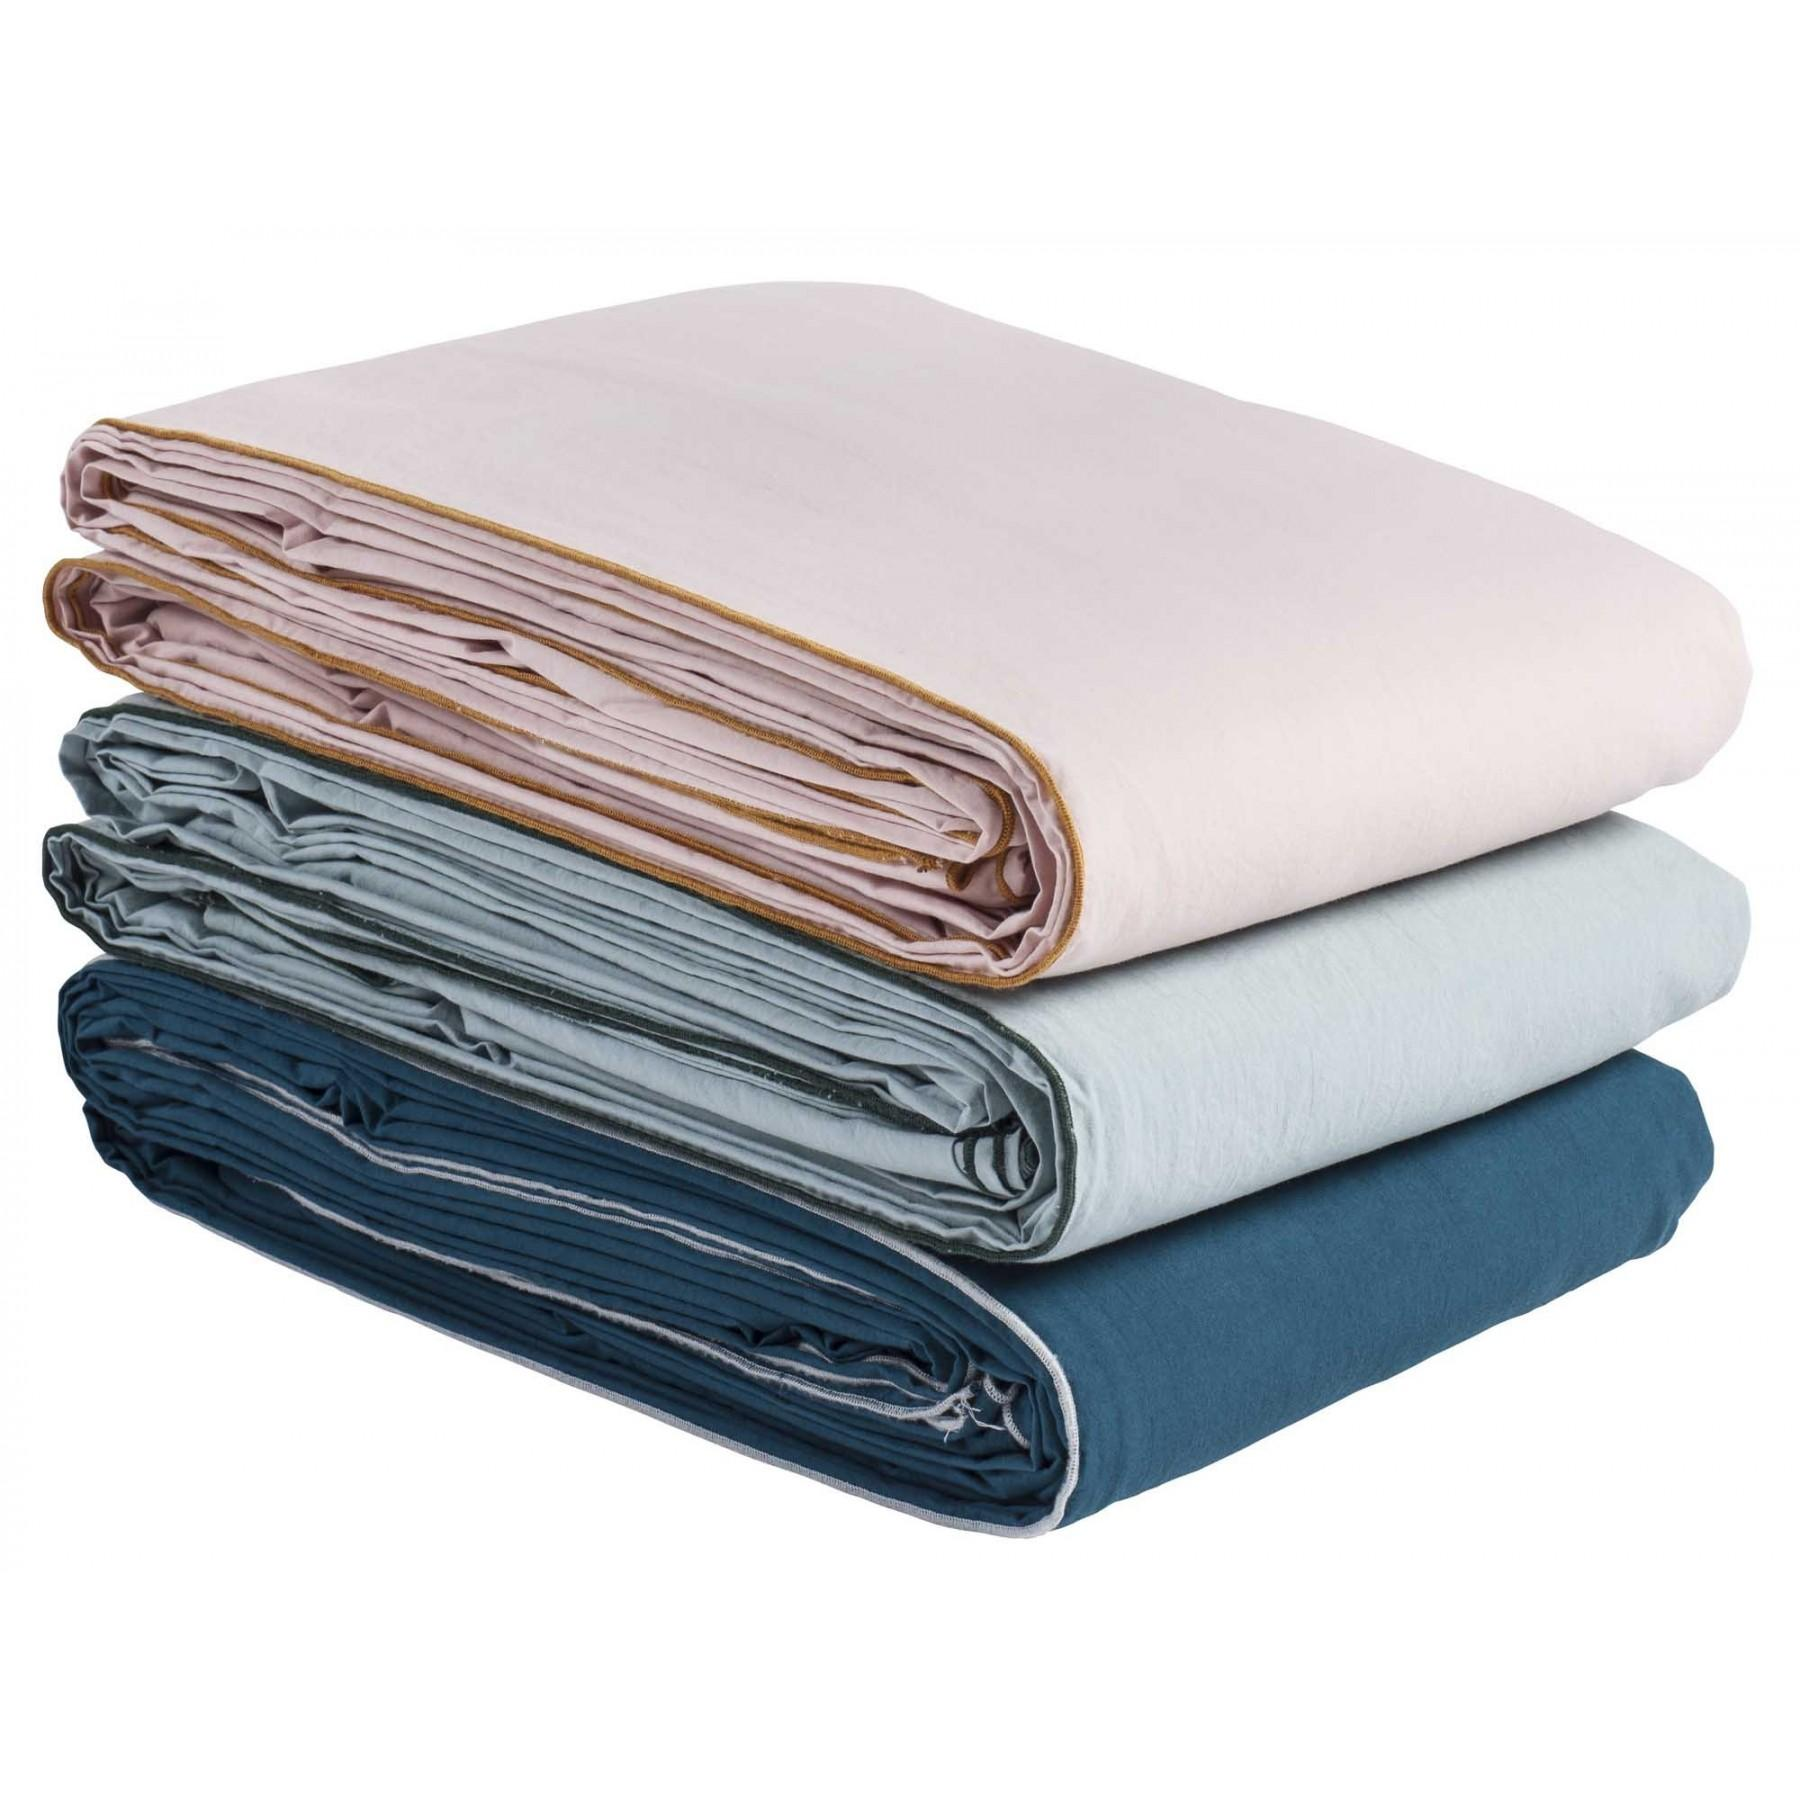 Duvet Cover Pink - 100% Cotton Percale